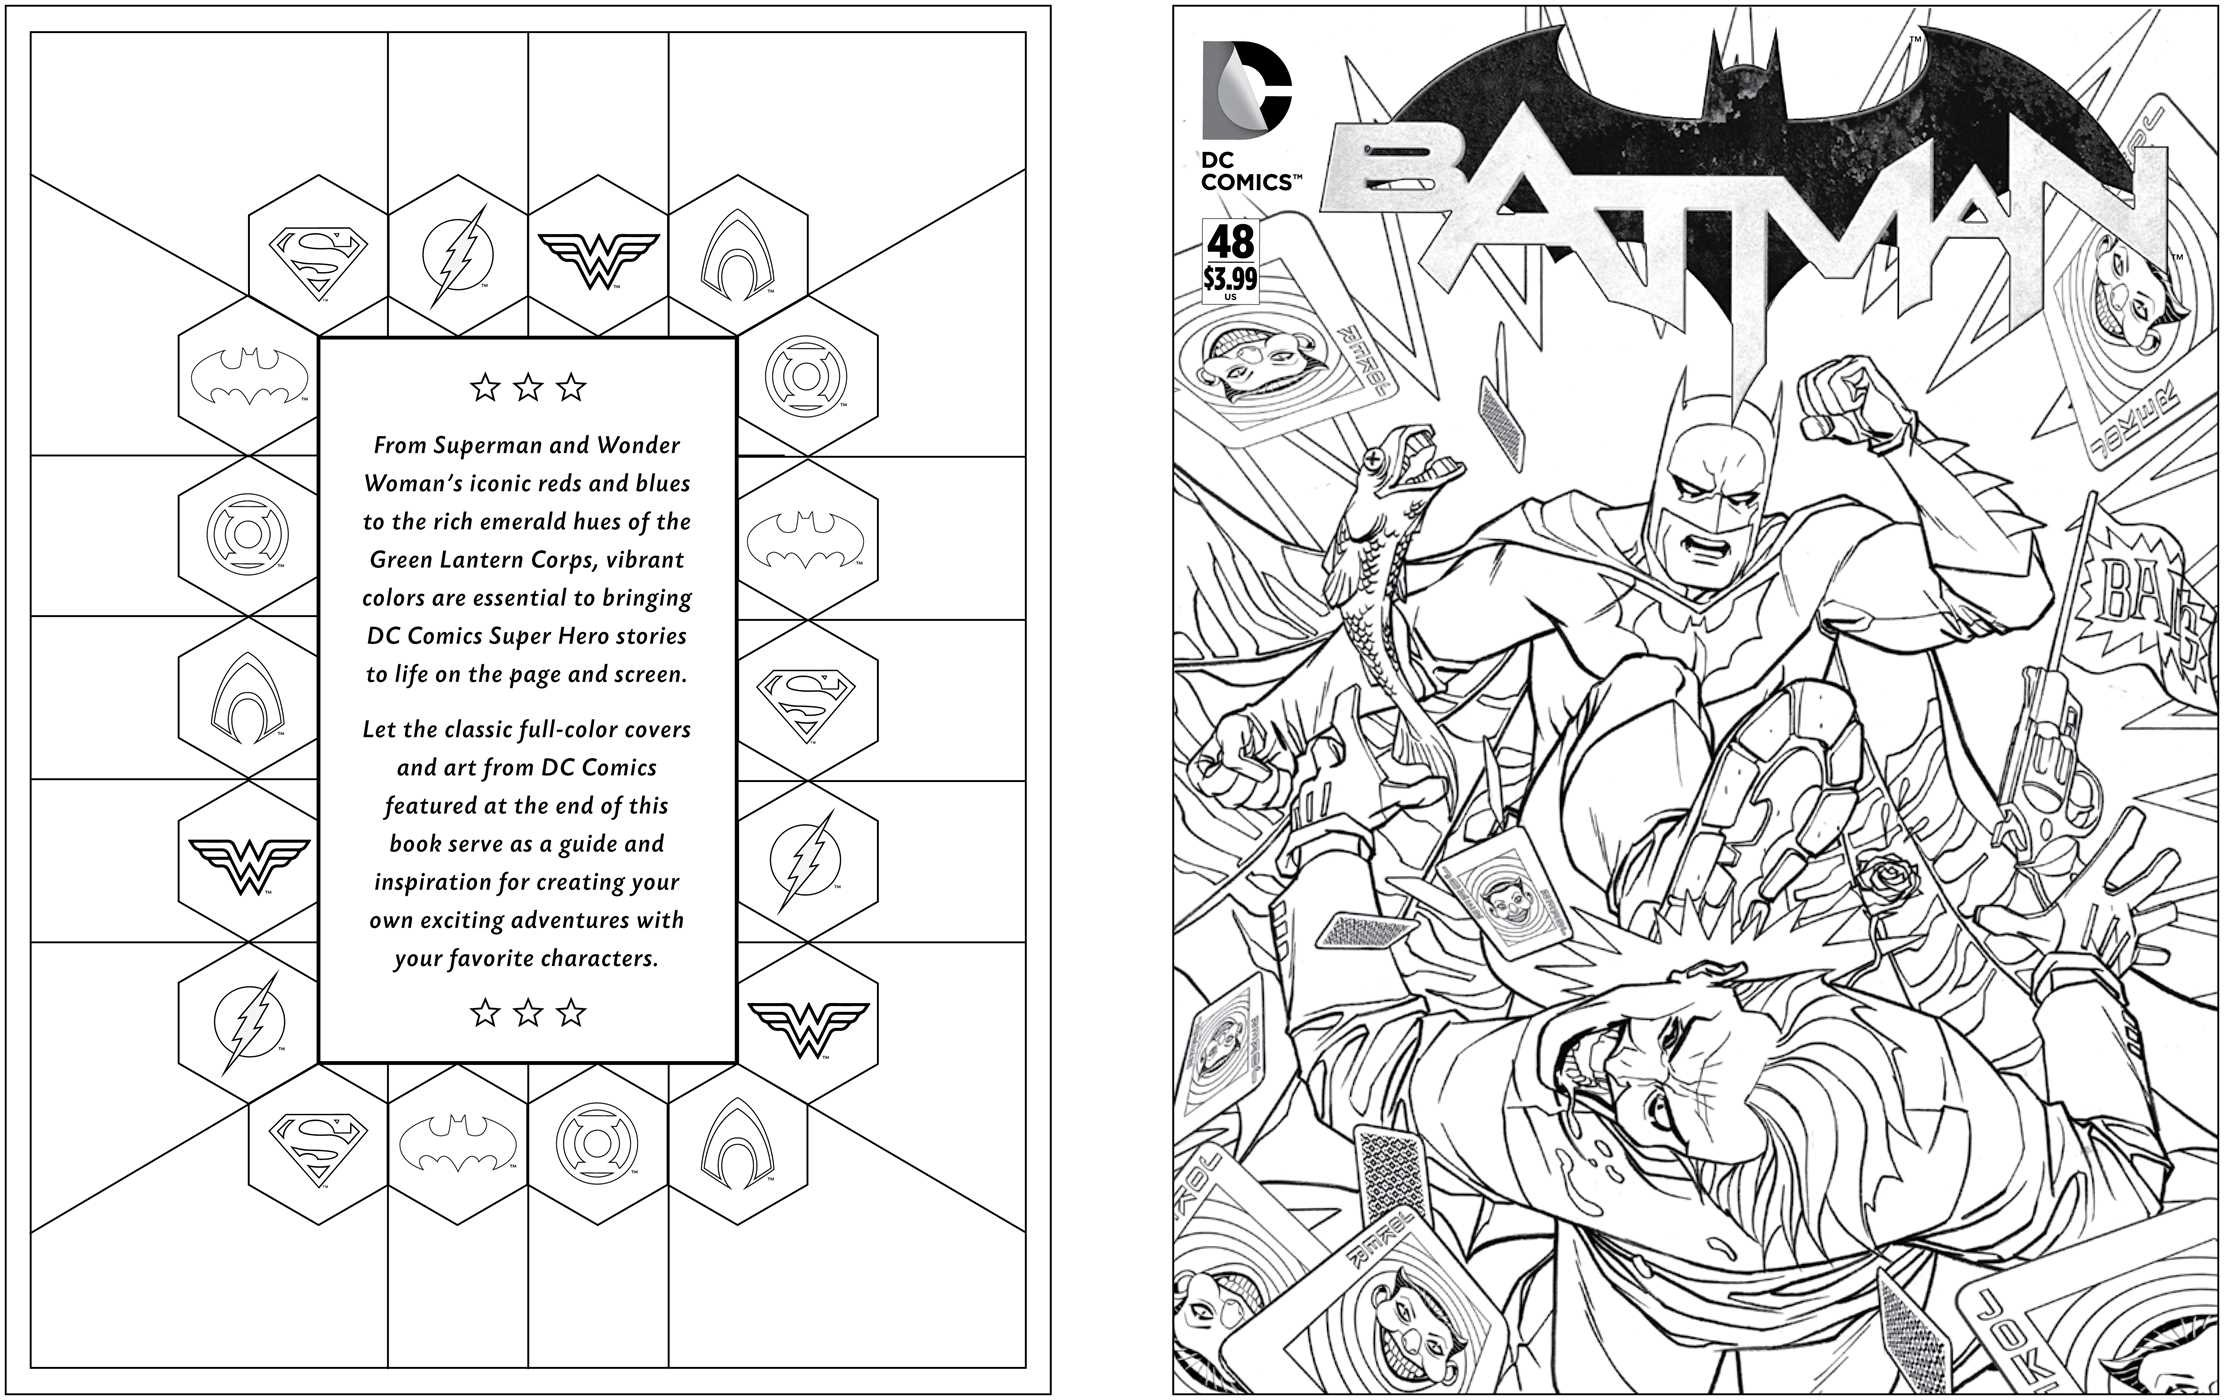 Coloring book color of art - Amazon Com Dc Comics Coloring Book 9781608878291 Insight Editions Books